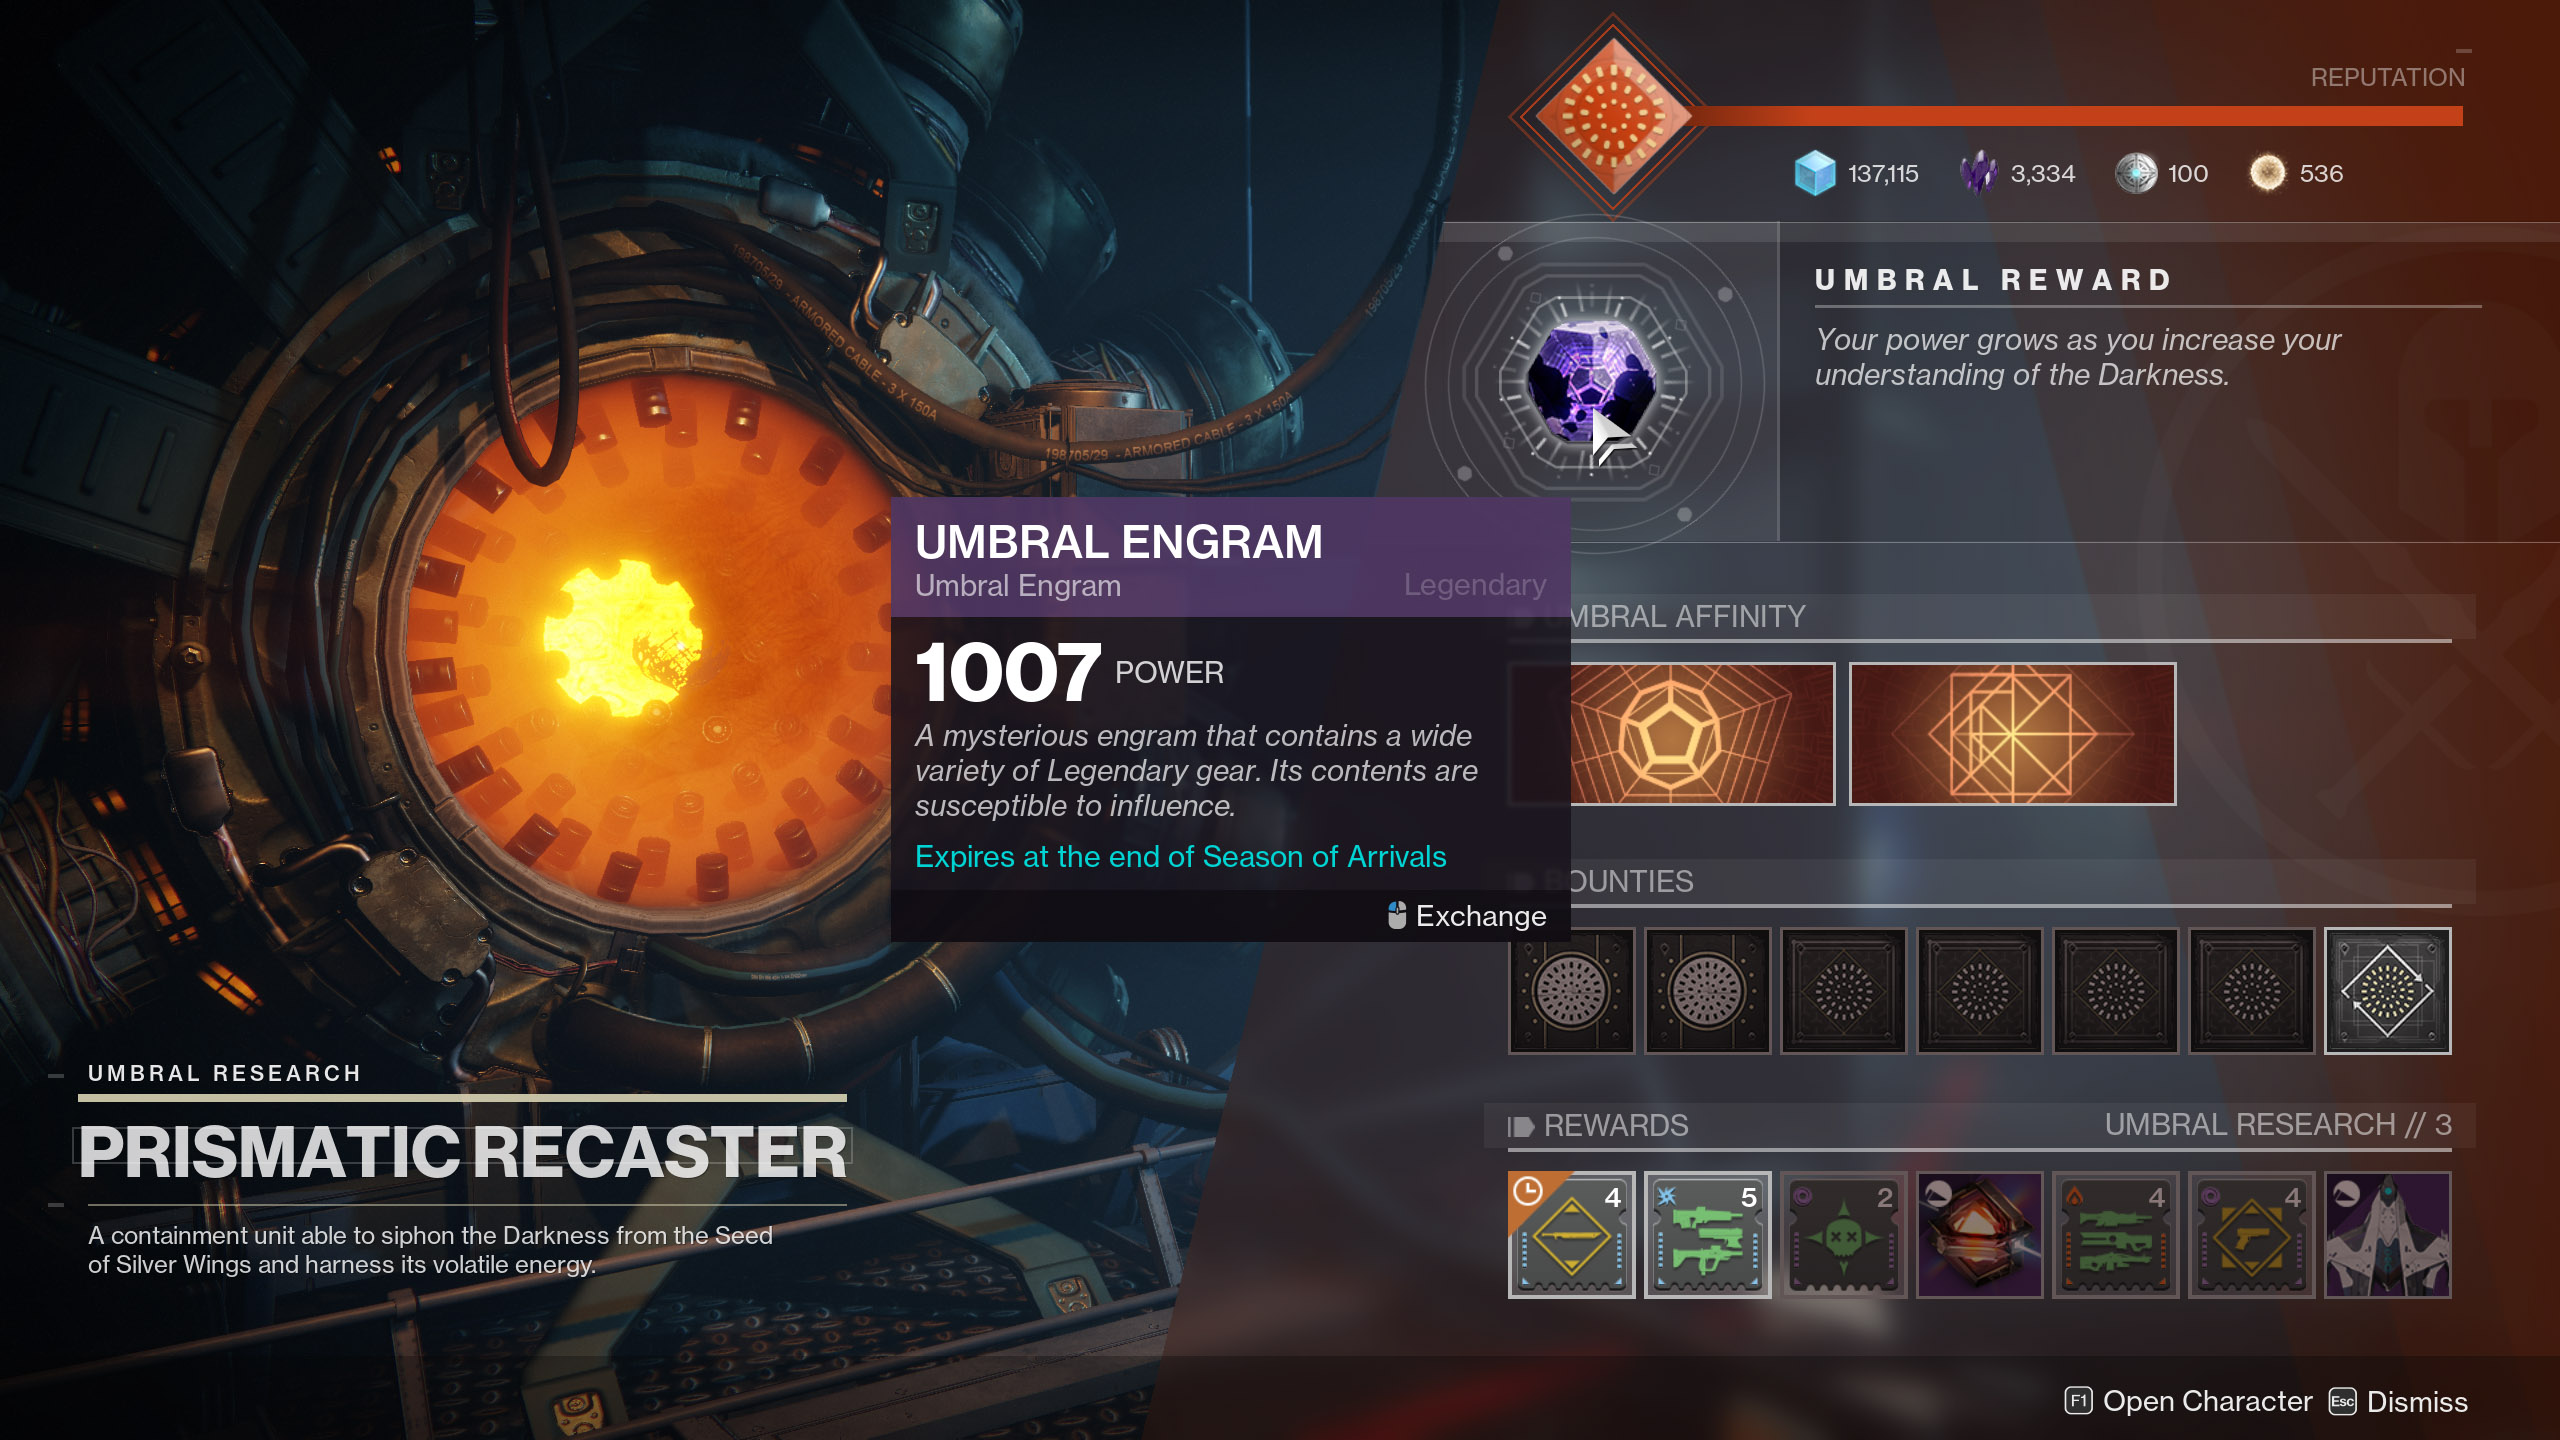 Umbral Engram Destiny 2